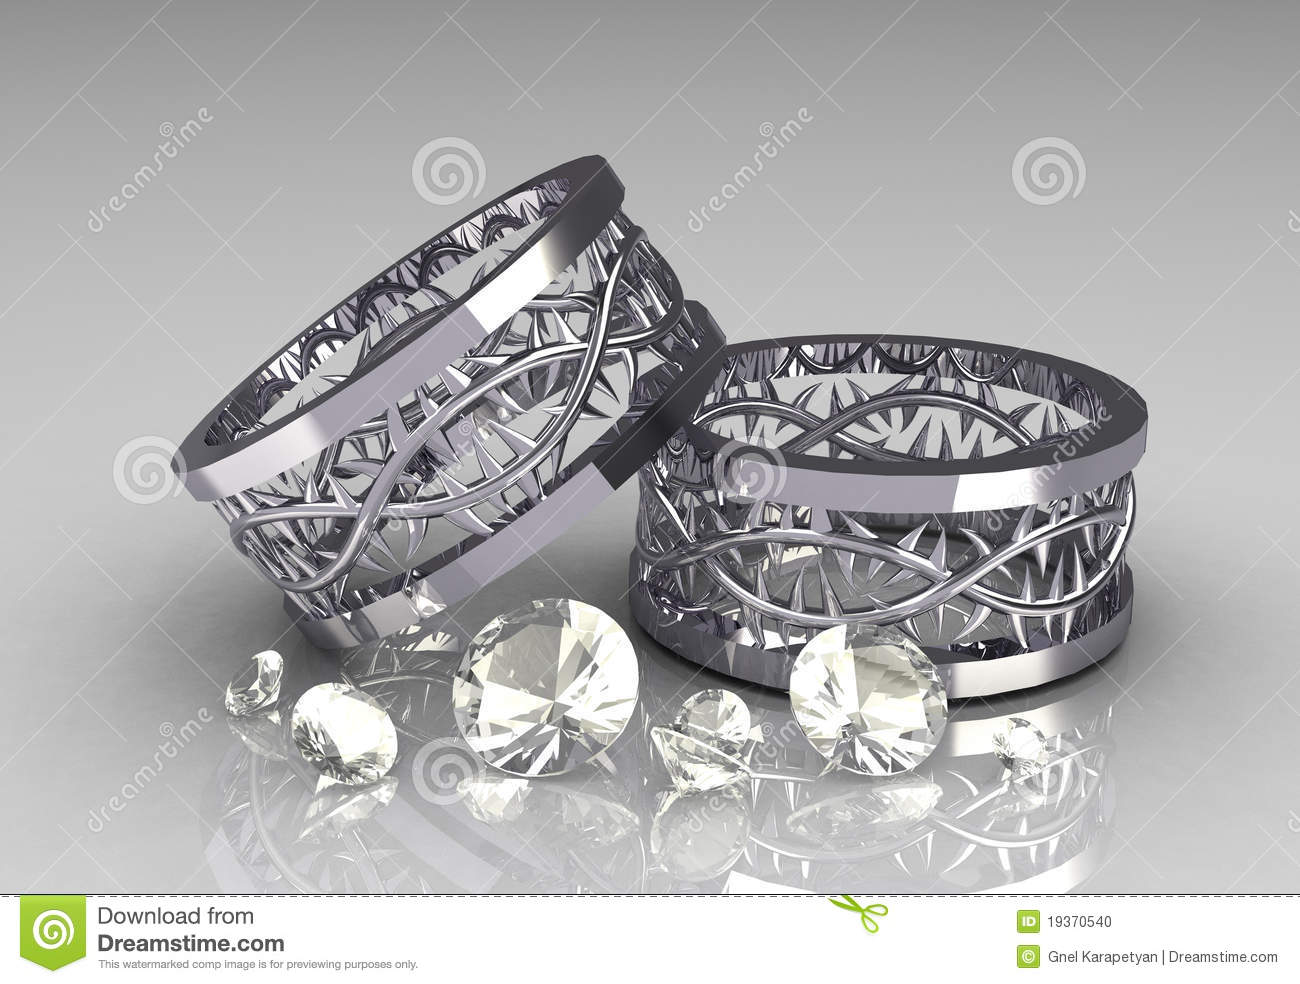 stock photo pair christs crown white gold wedding bands image white gold wedding bands Pair of Christs Crown White Gold Wedding Bands